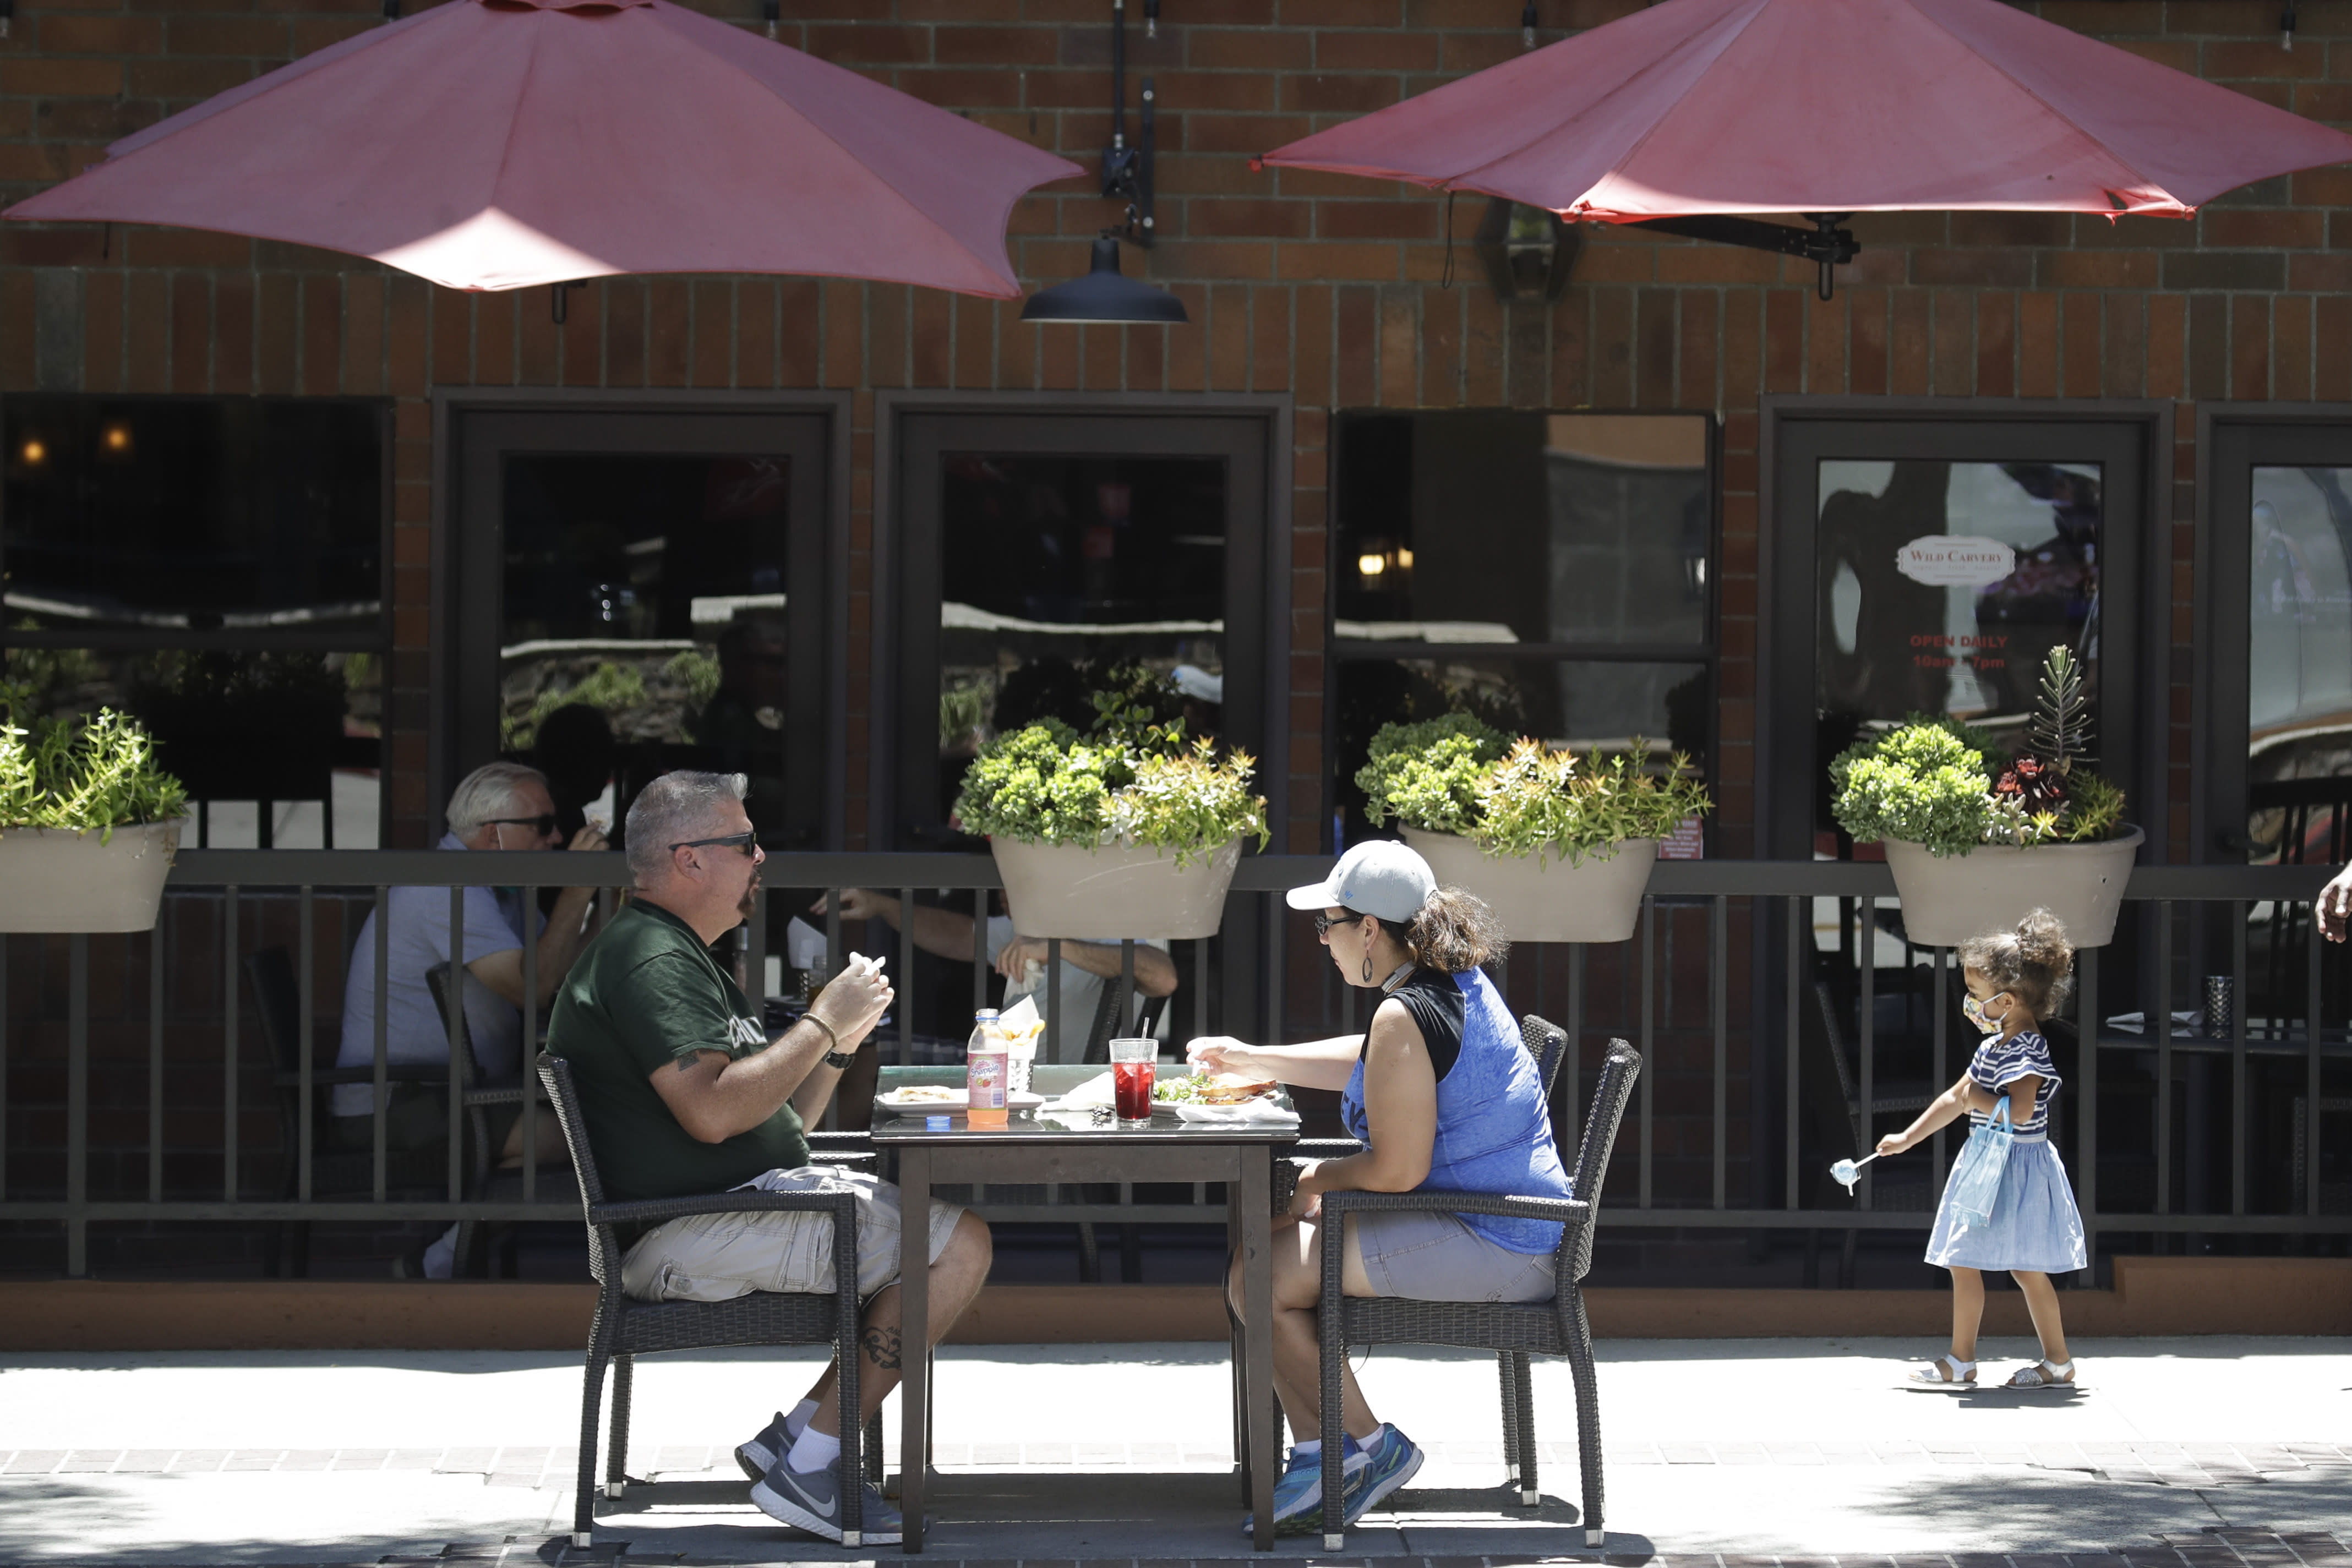 FILE - In this July 18, 2020 file photo patrons eat at table set up on a sidewalk in Burbank, Calif. A steady drop in coronavirus cases across California cleared the way Tuesday, Sept. 22, 2020, for the wider reopening of businesses in nine counties, including much of the Bay Area, the state said. (AP Photo/Marcio Jose Sanchez,File)